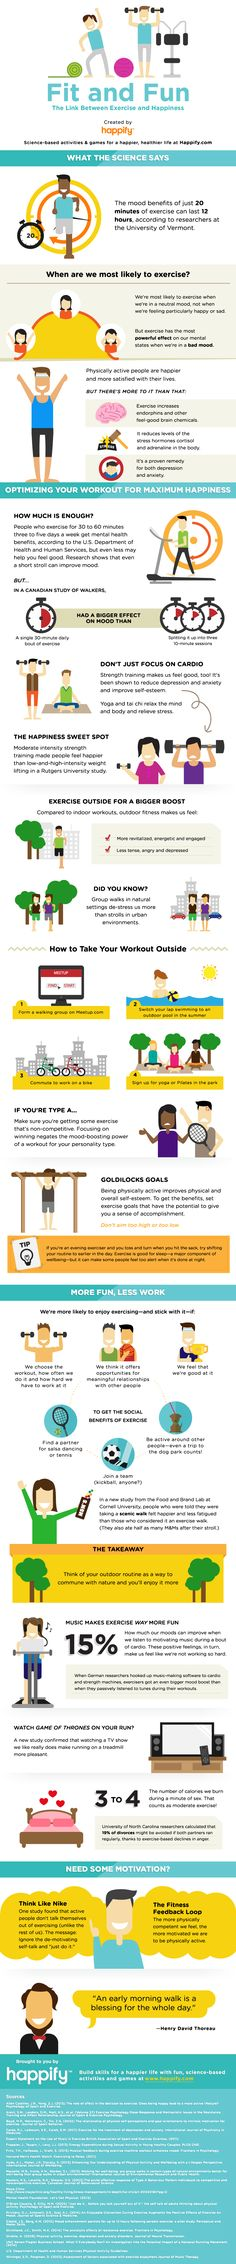 exercise and happiness infographic